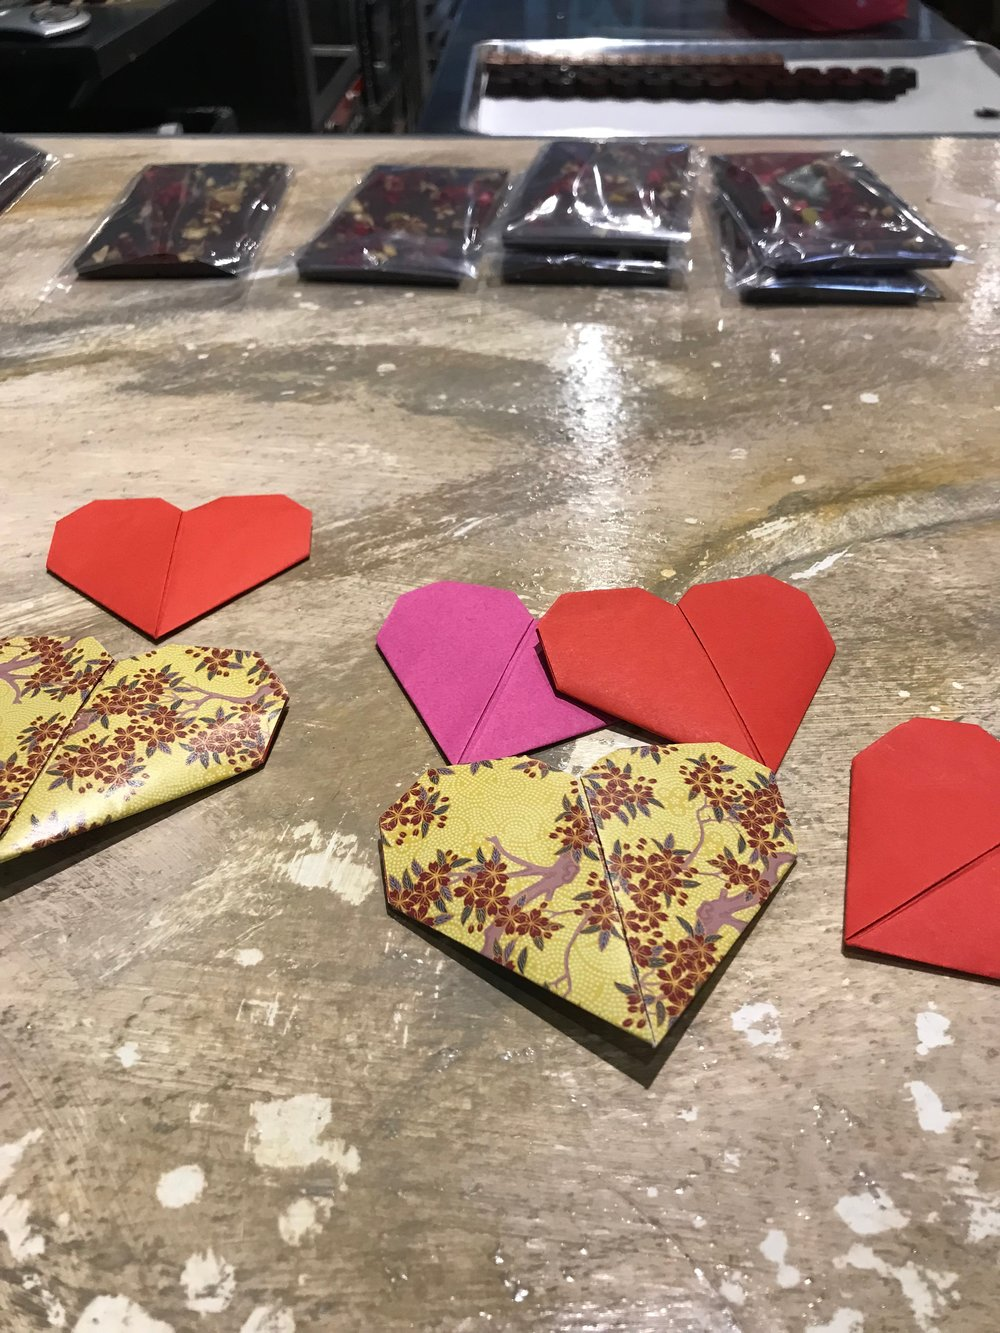 Tina's young son, a budding origami artist, created these hearts to pair with her chocolates.